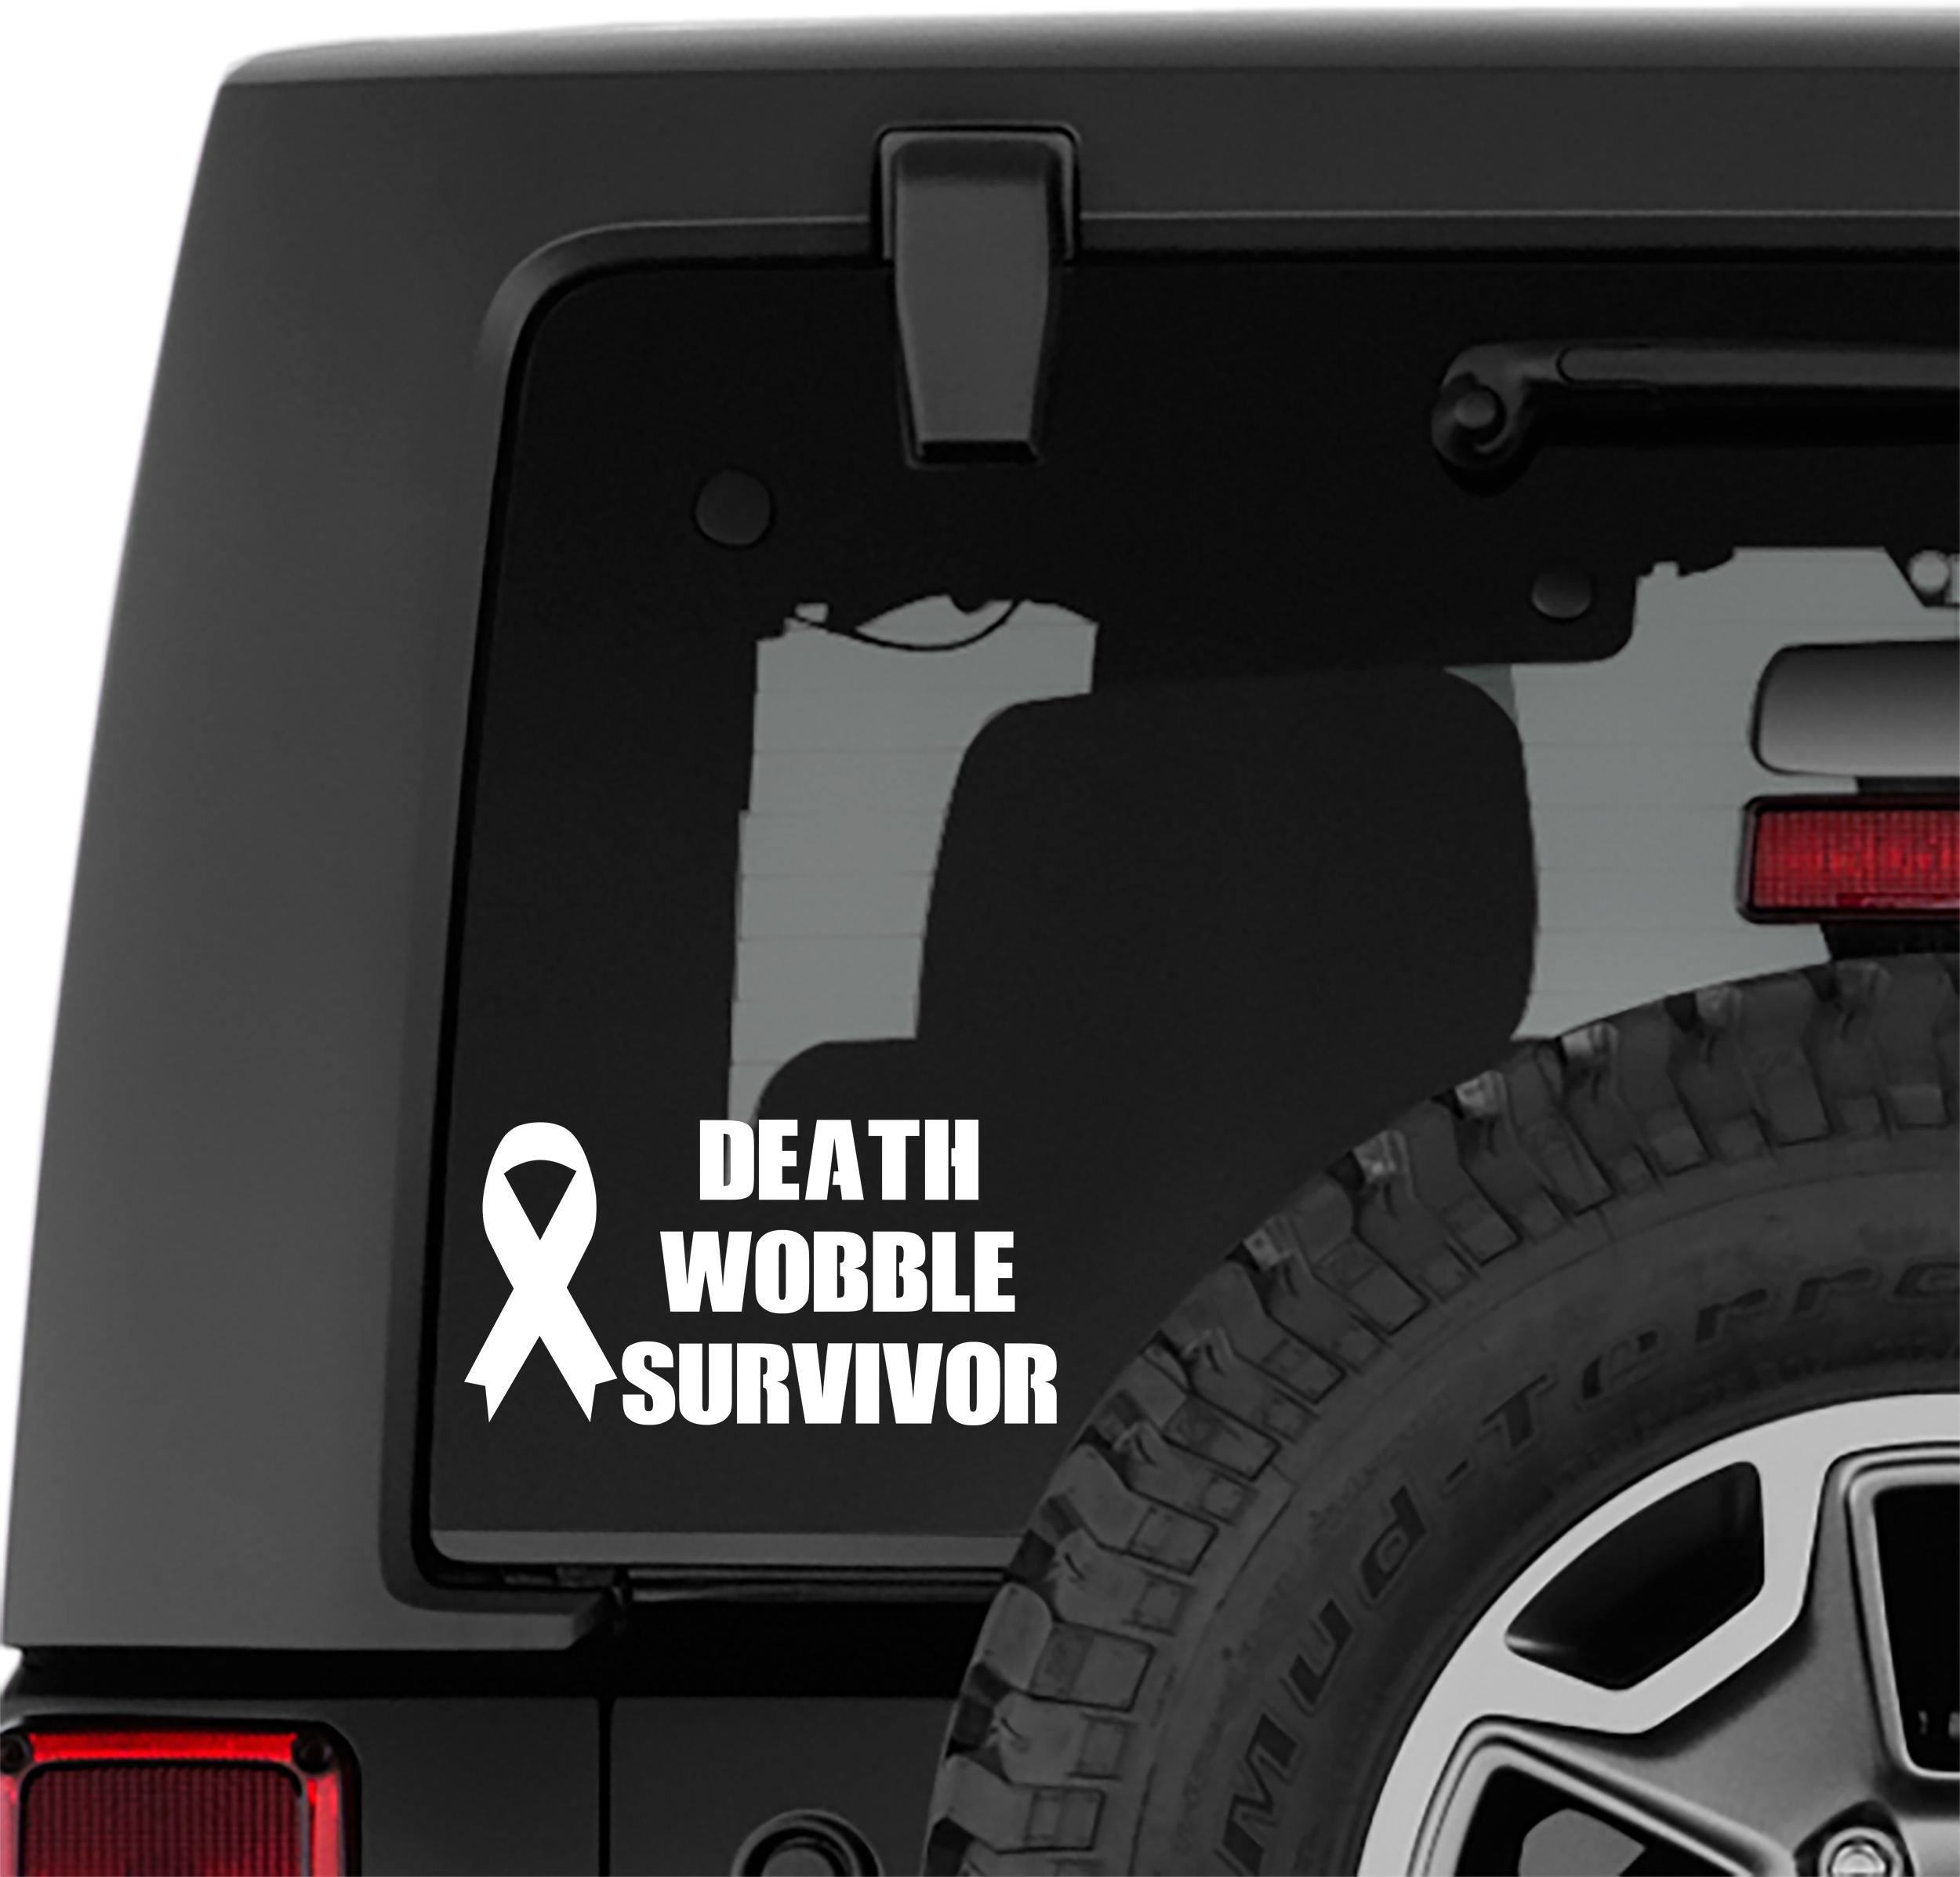 Death Wobble Survivor Vinyl Decal | 4x4 Death Wobble Survivor Ribbon Sticker